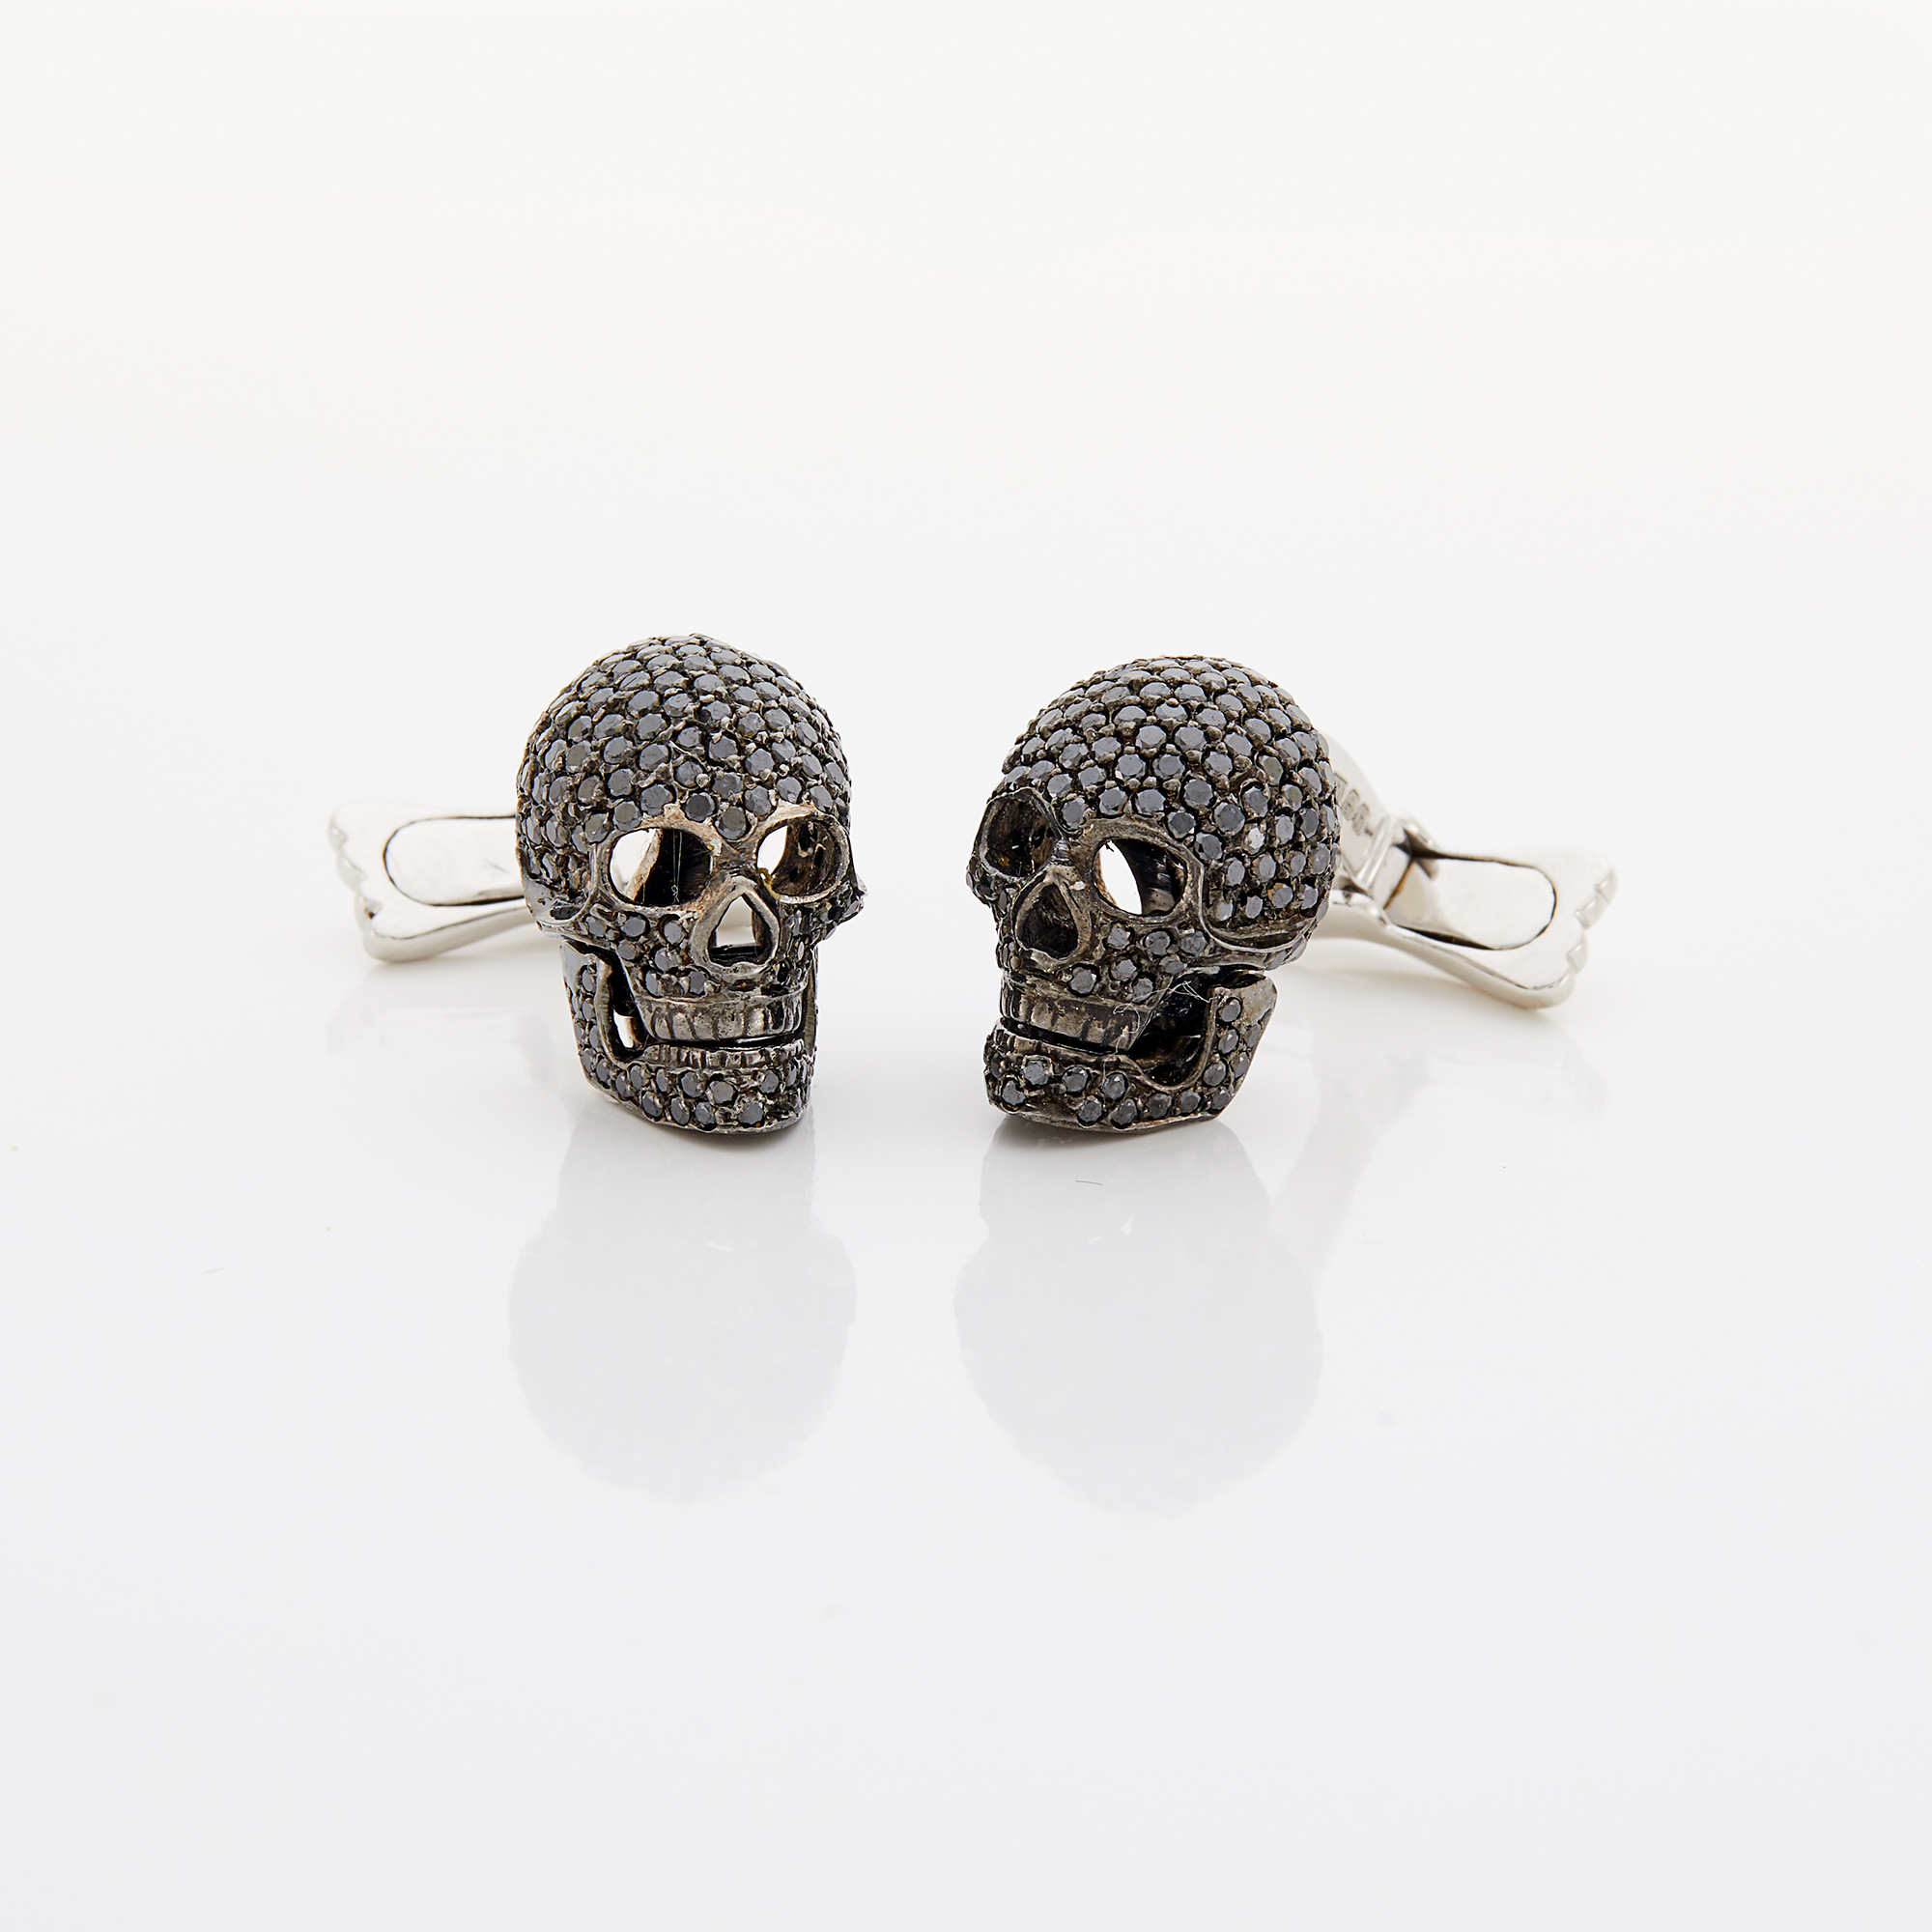 Lot image - Pair of White Gold and Black Diamond Skull Cufflinks, Deakin & Francis